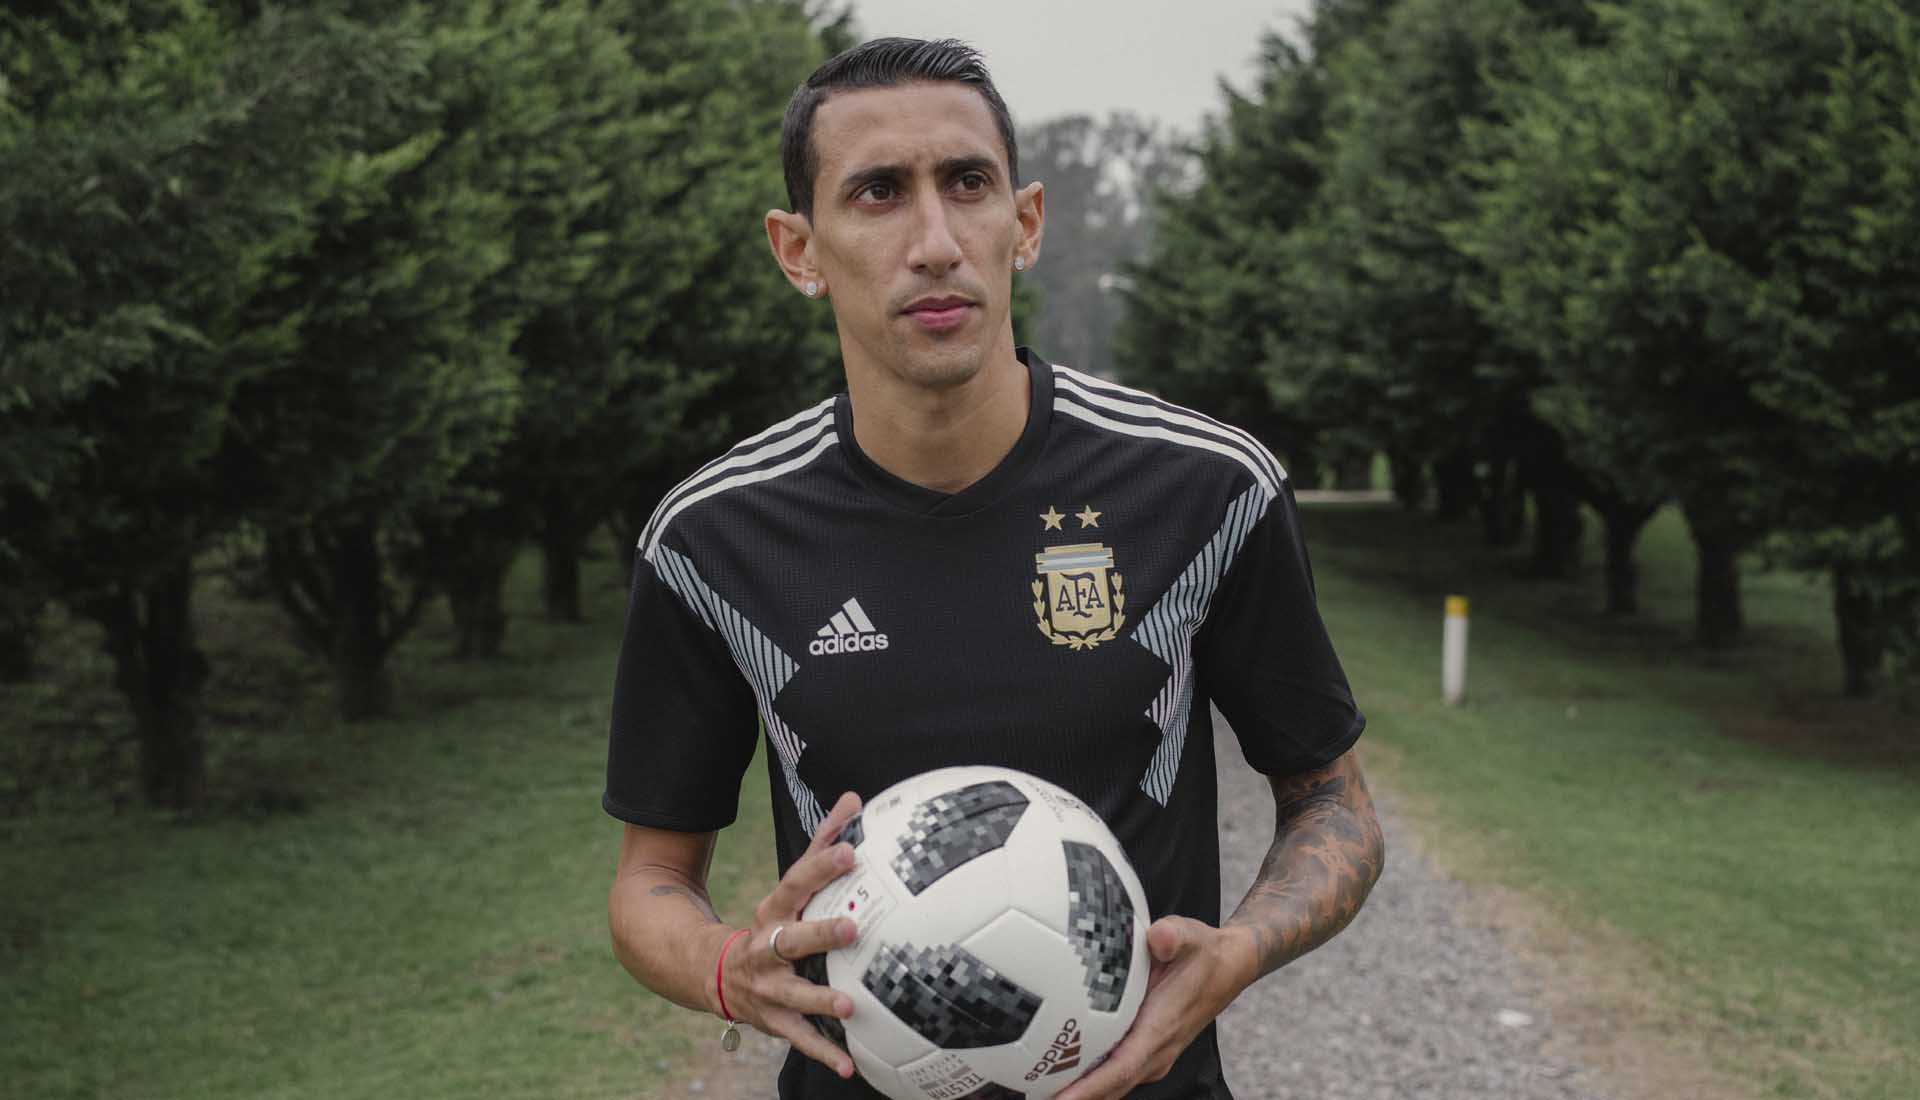 a87b94b034d19 adidas Launch The Argentina 2018 World Cup Away Shirt - SoccerBible